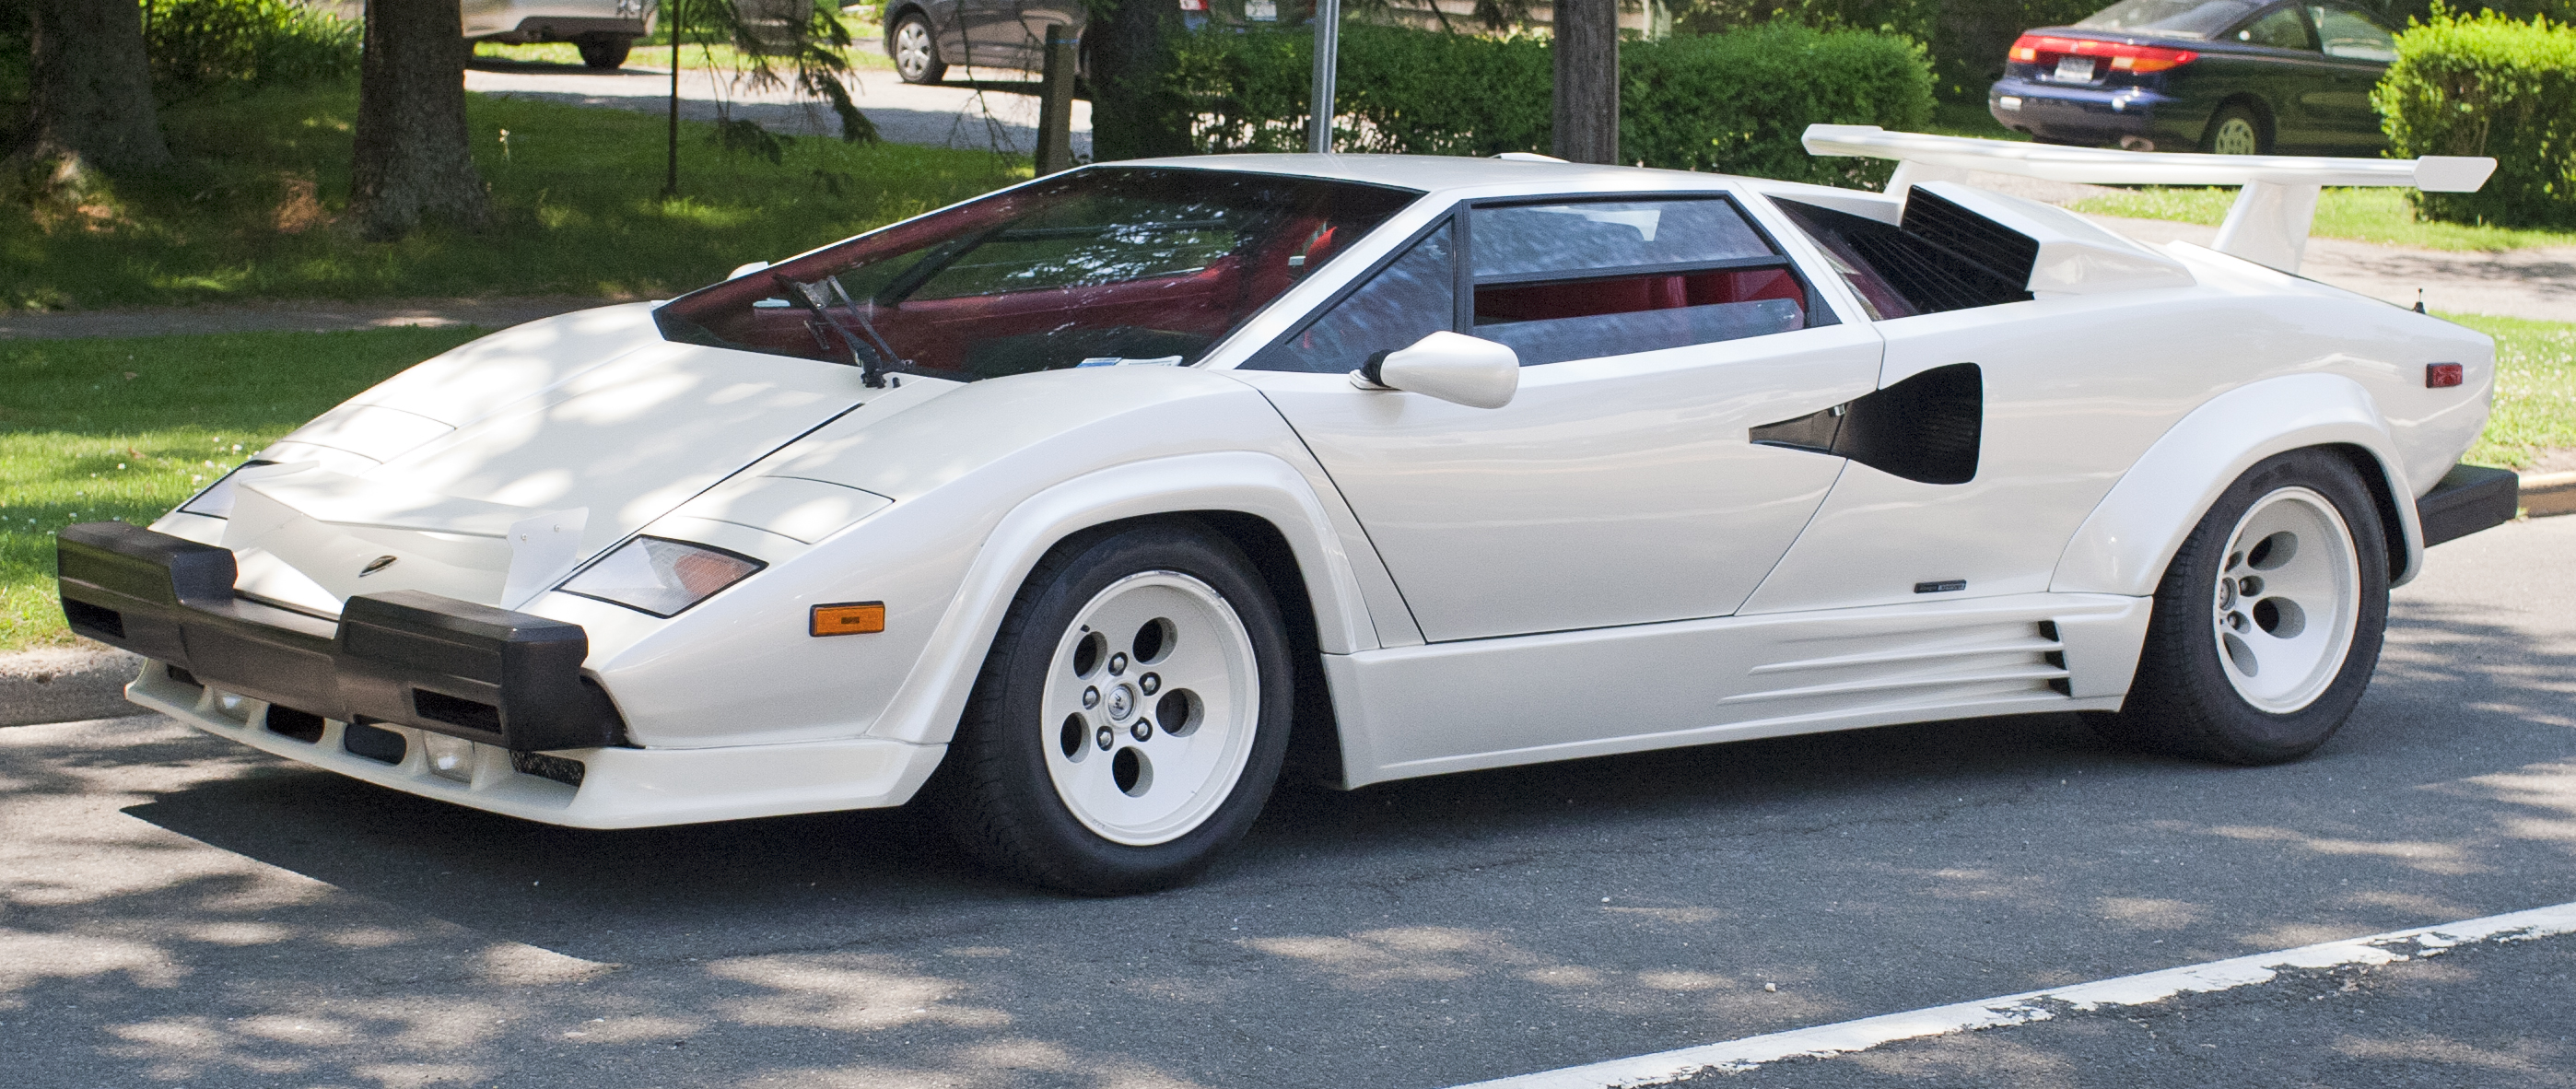 file lamborghini countach us spec wikimedia commons. Black Bedroom Furniture Sets. Home Design Ideas